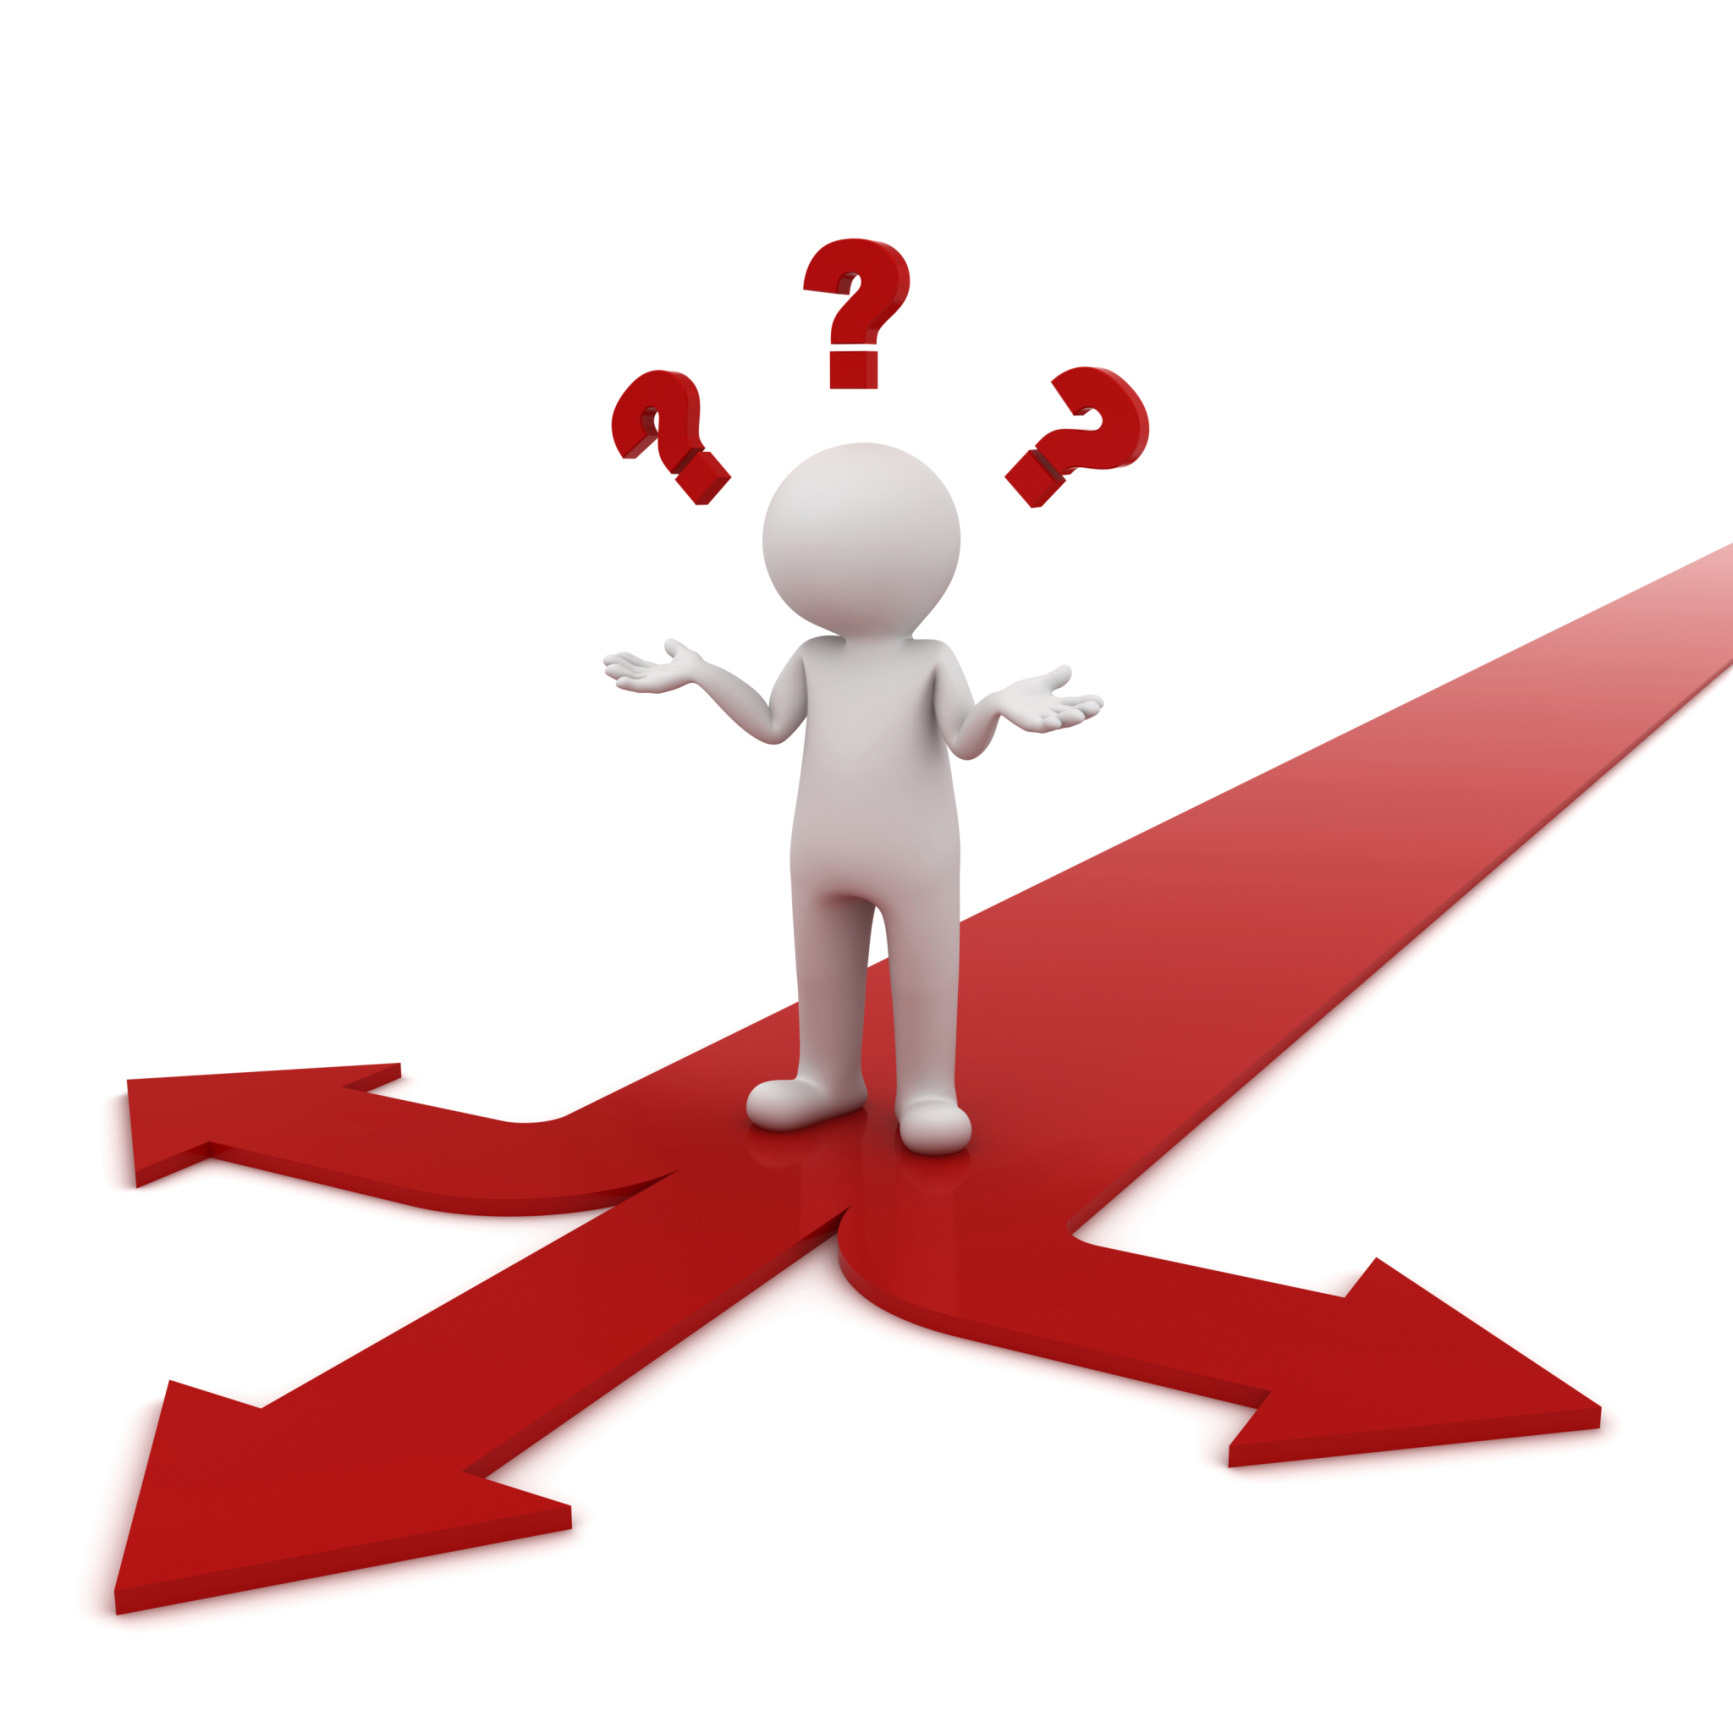 Choice clipart decision making Cycles  B2B Relevant of